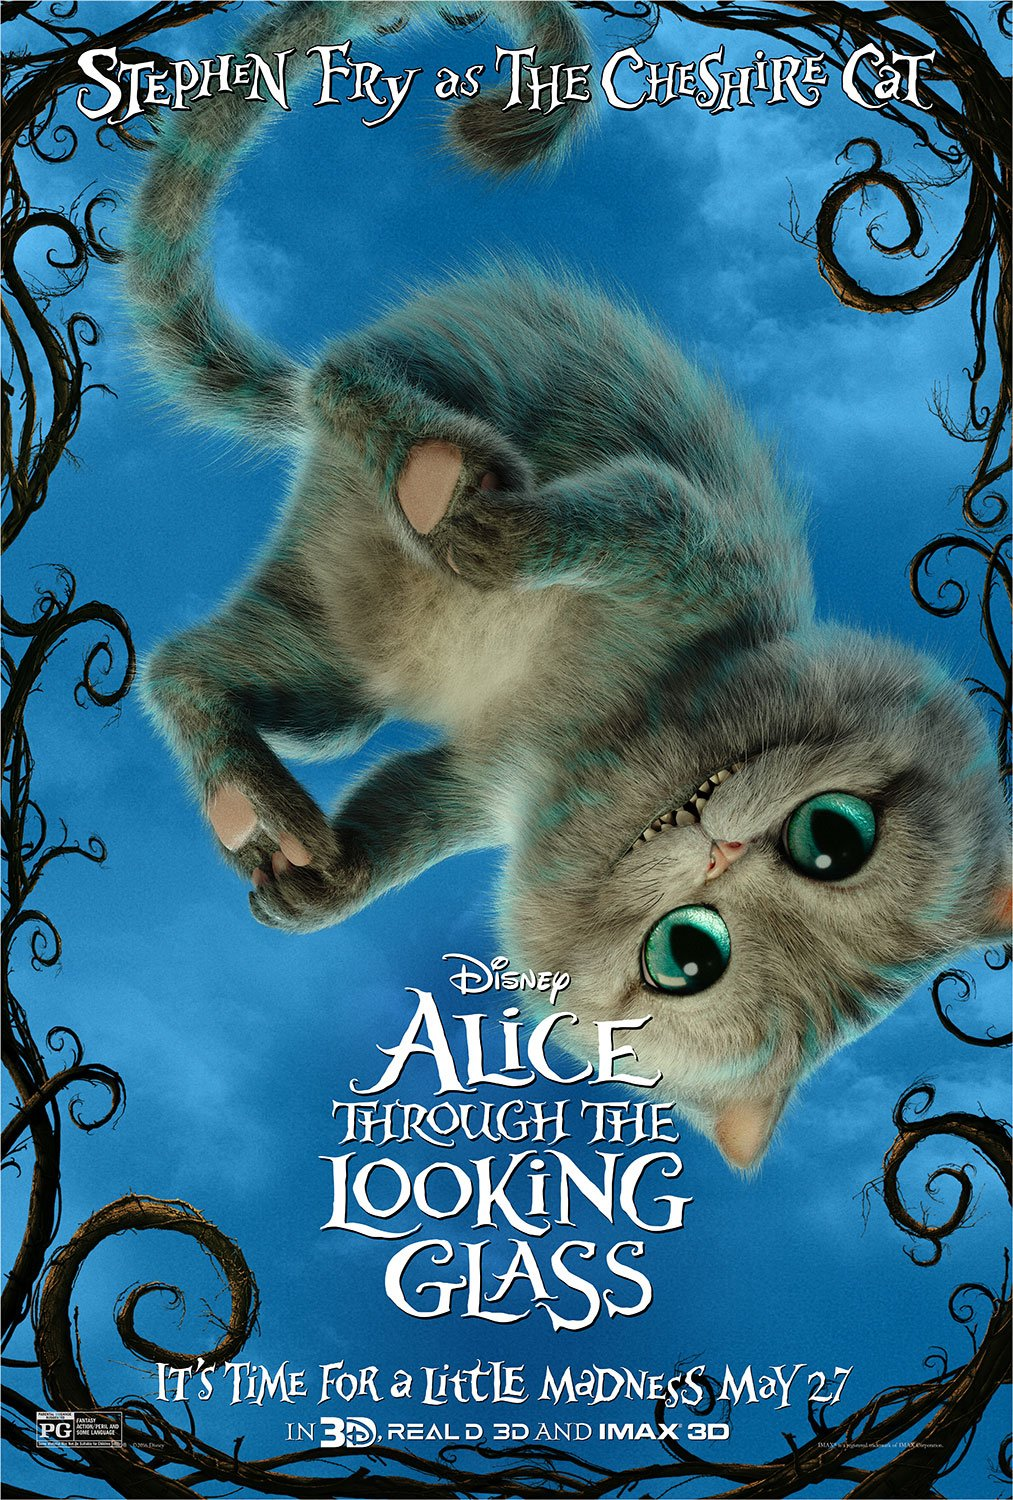 Alice Through The Looking Glass Character Poster 2